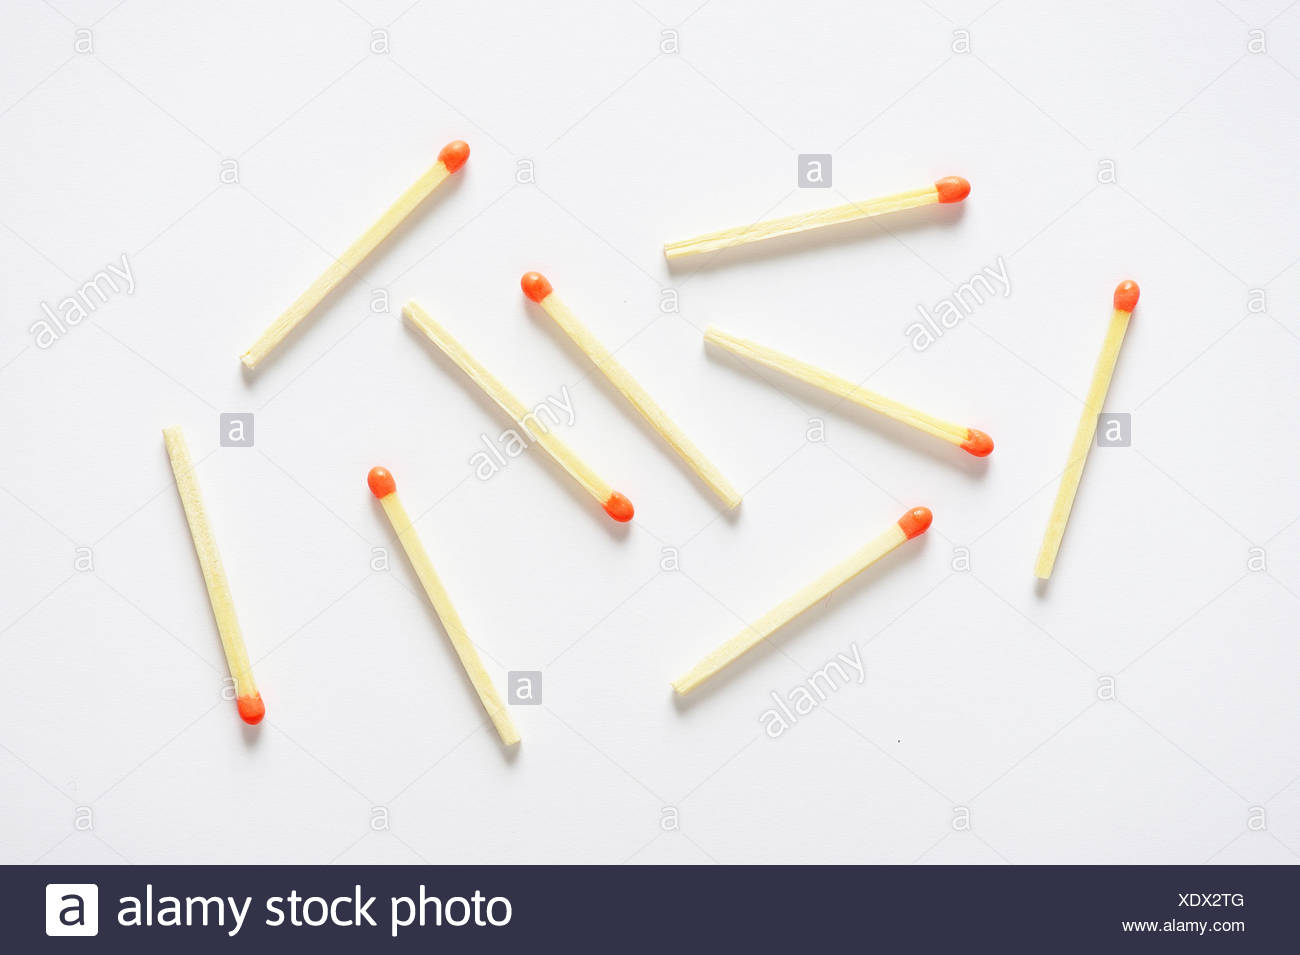 Scattered matches Stock Photo